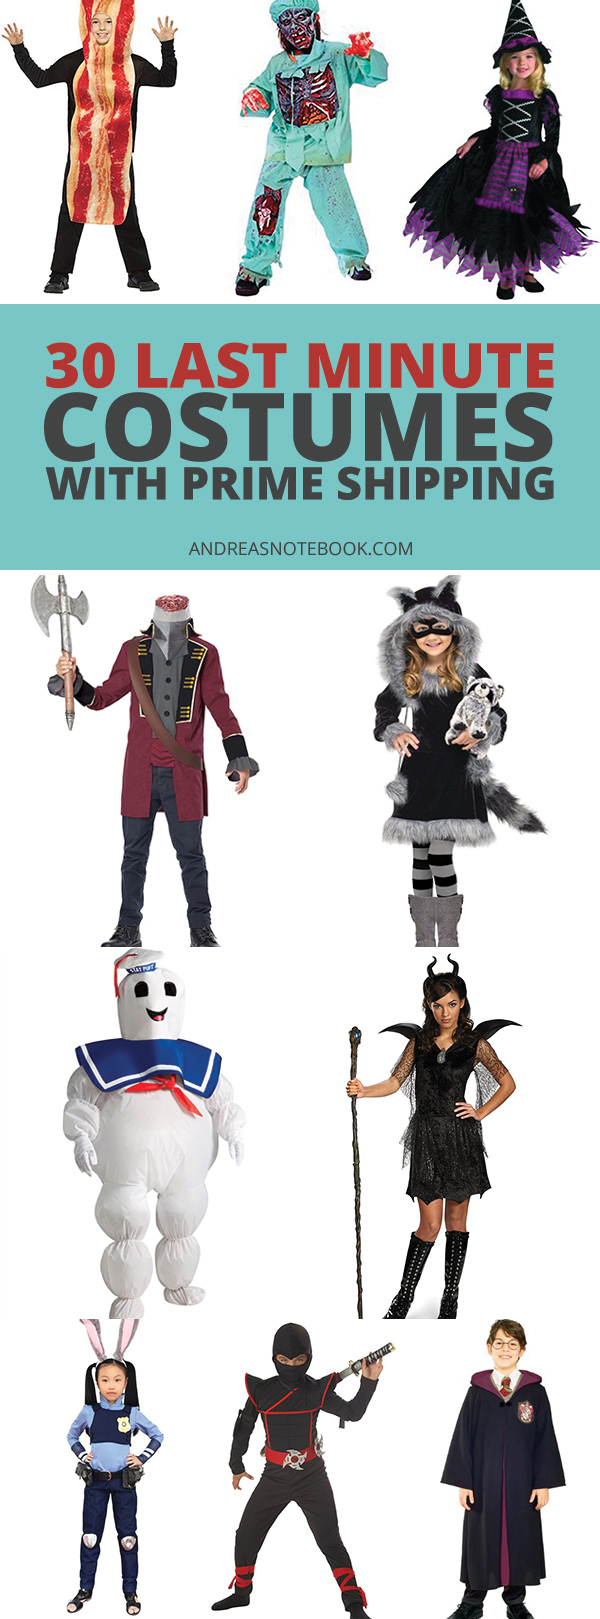 30 Last Minute Costumes to buy - FREE SHIPPING